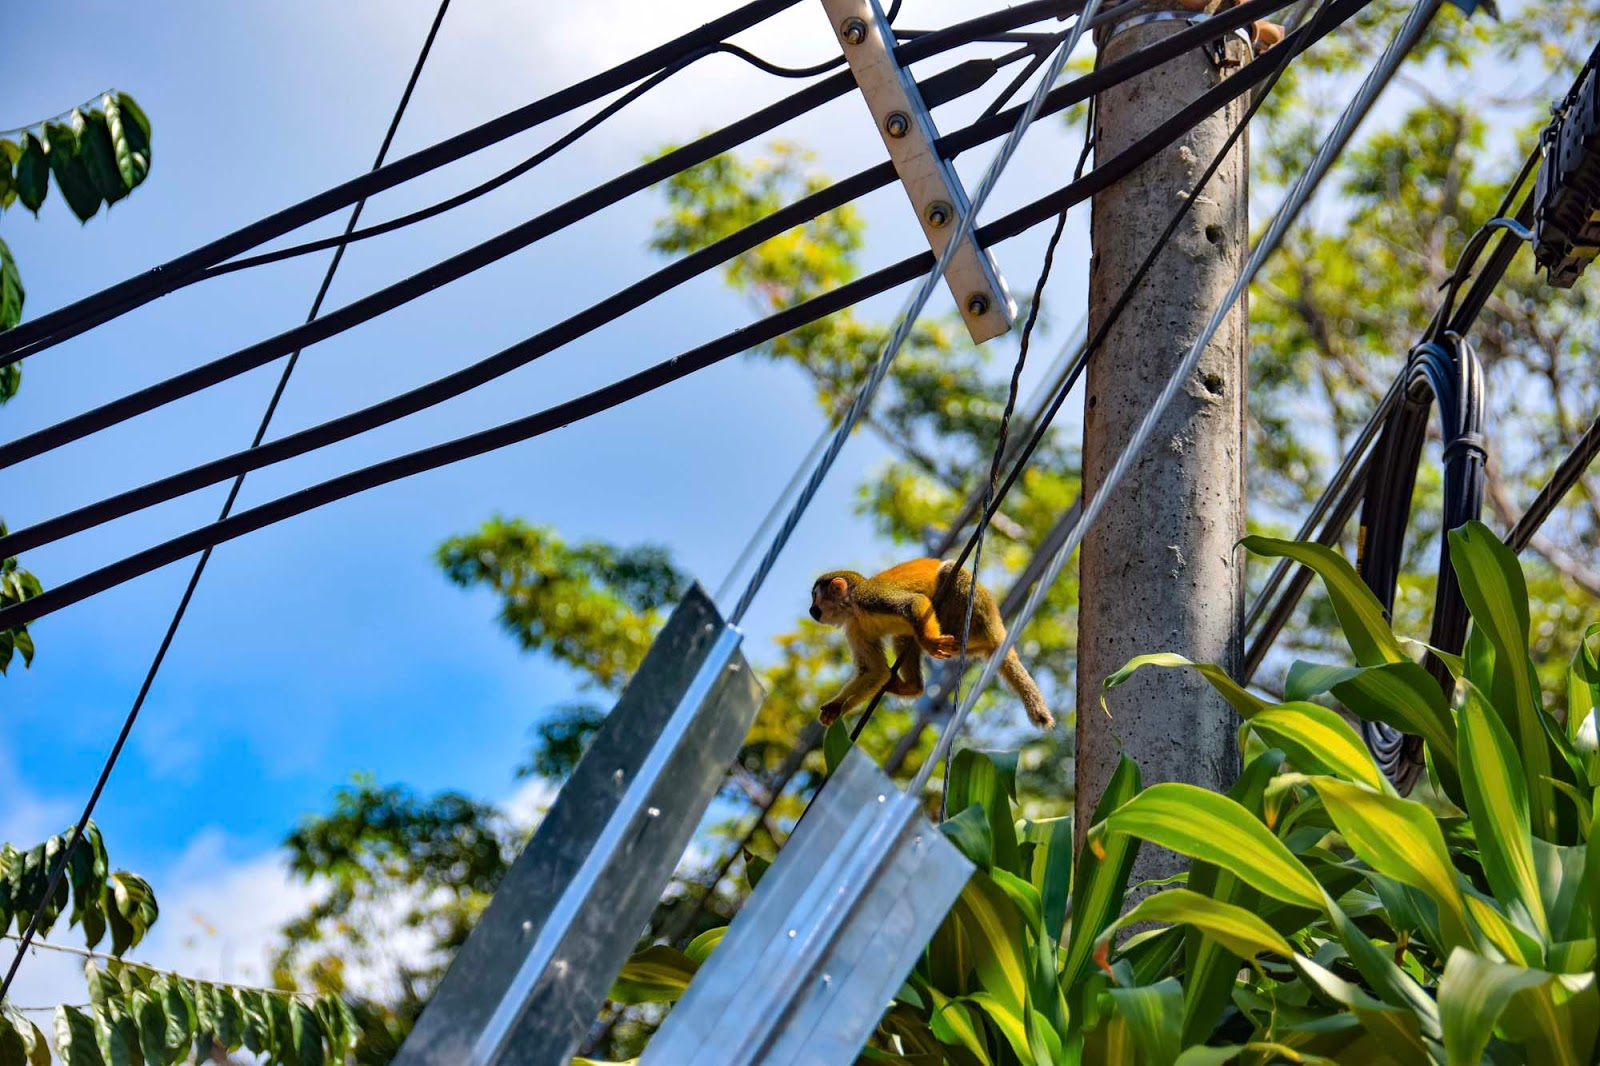 monkey on the telephone lines